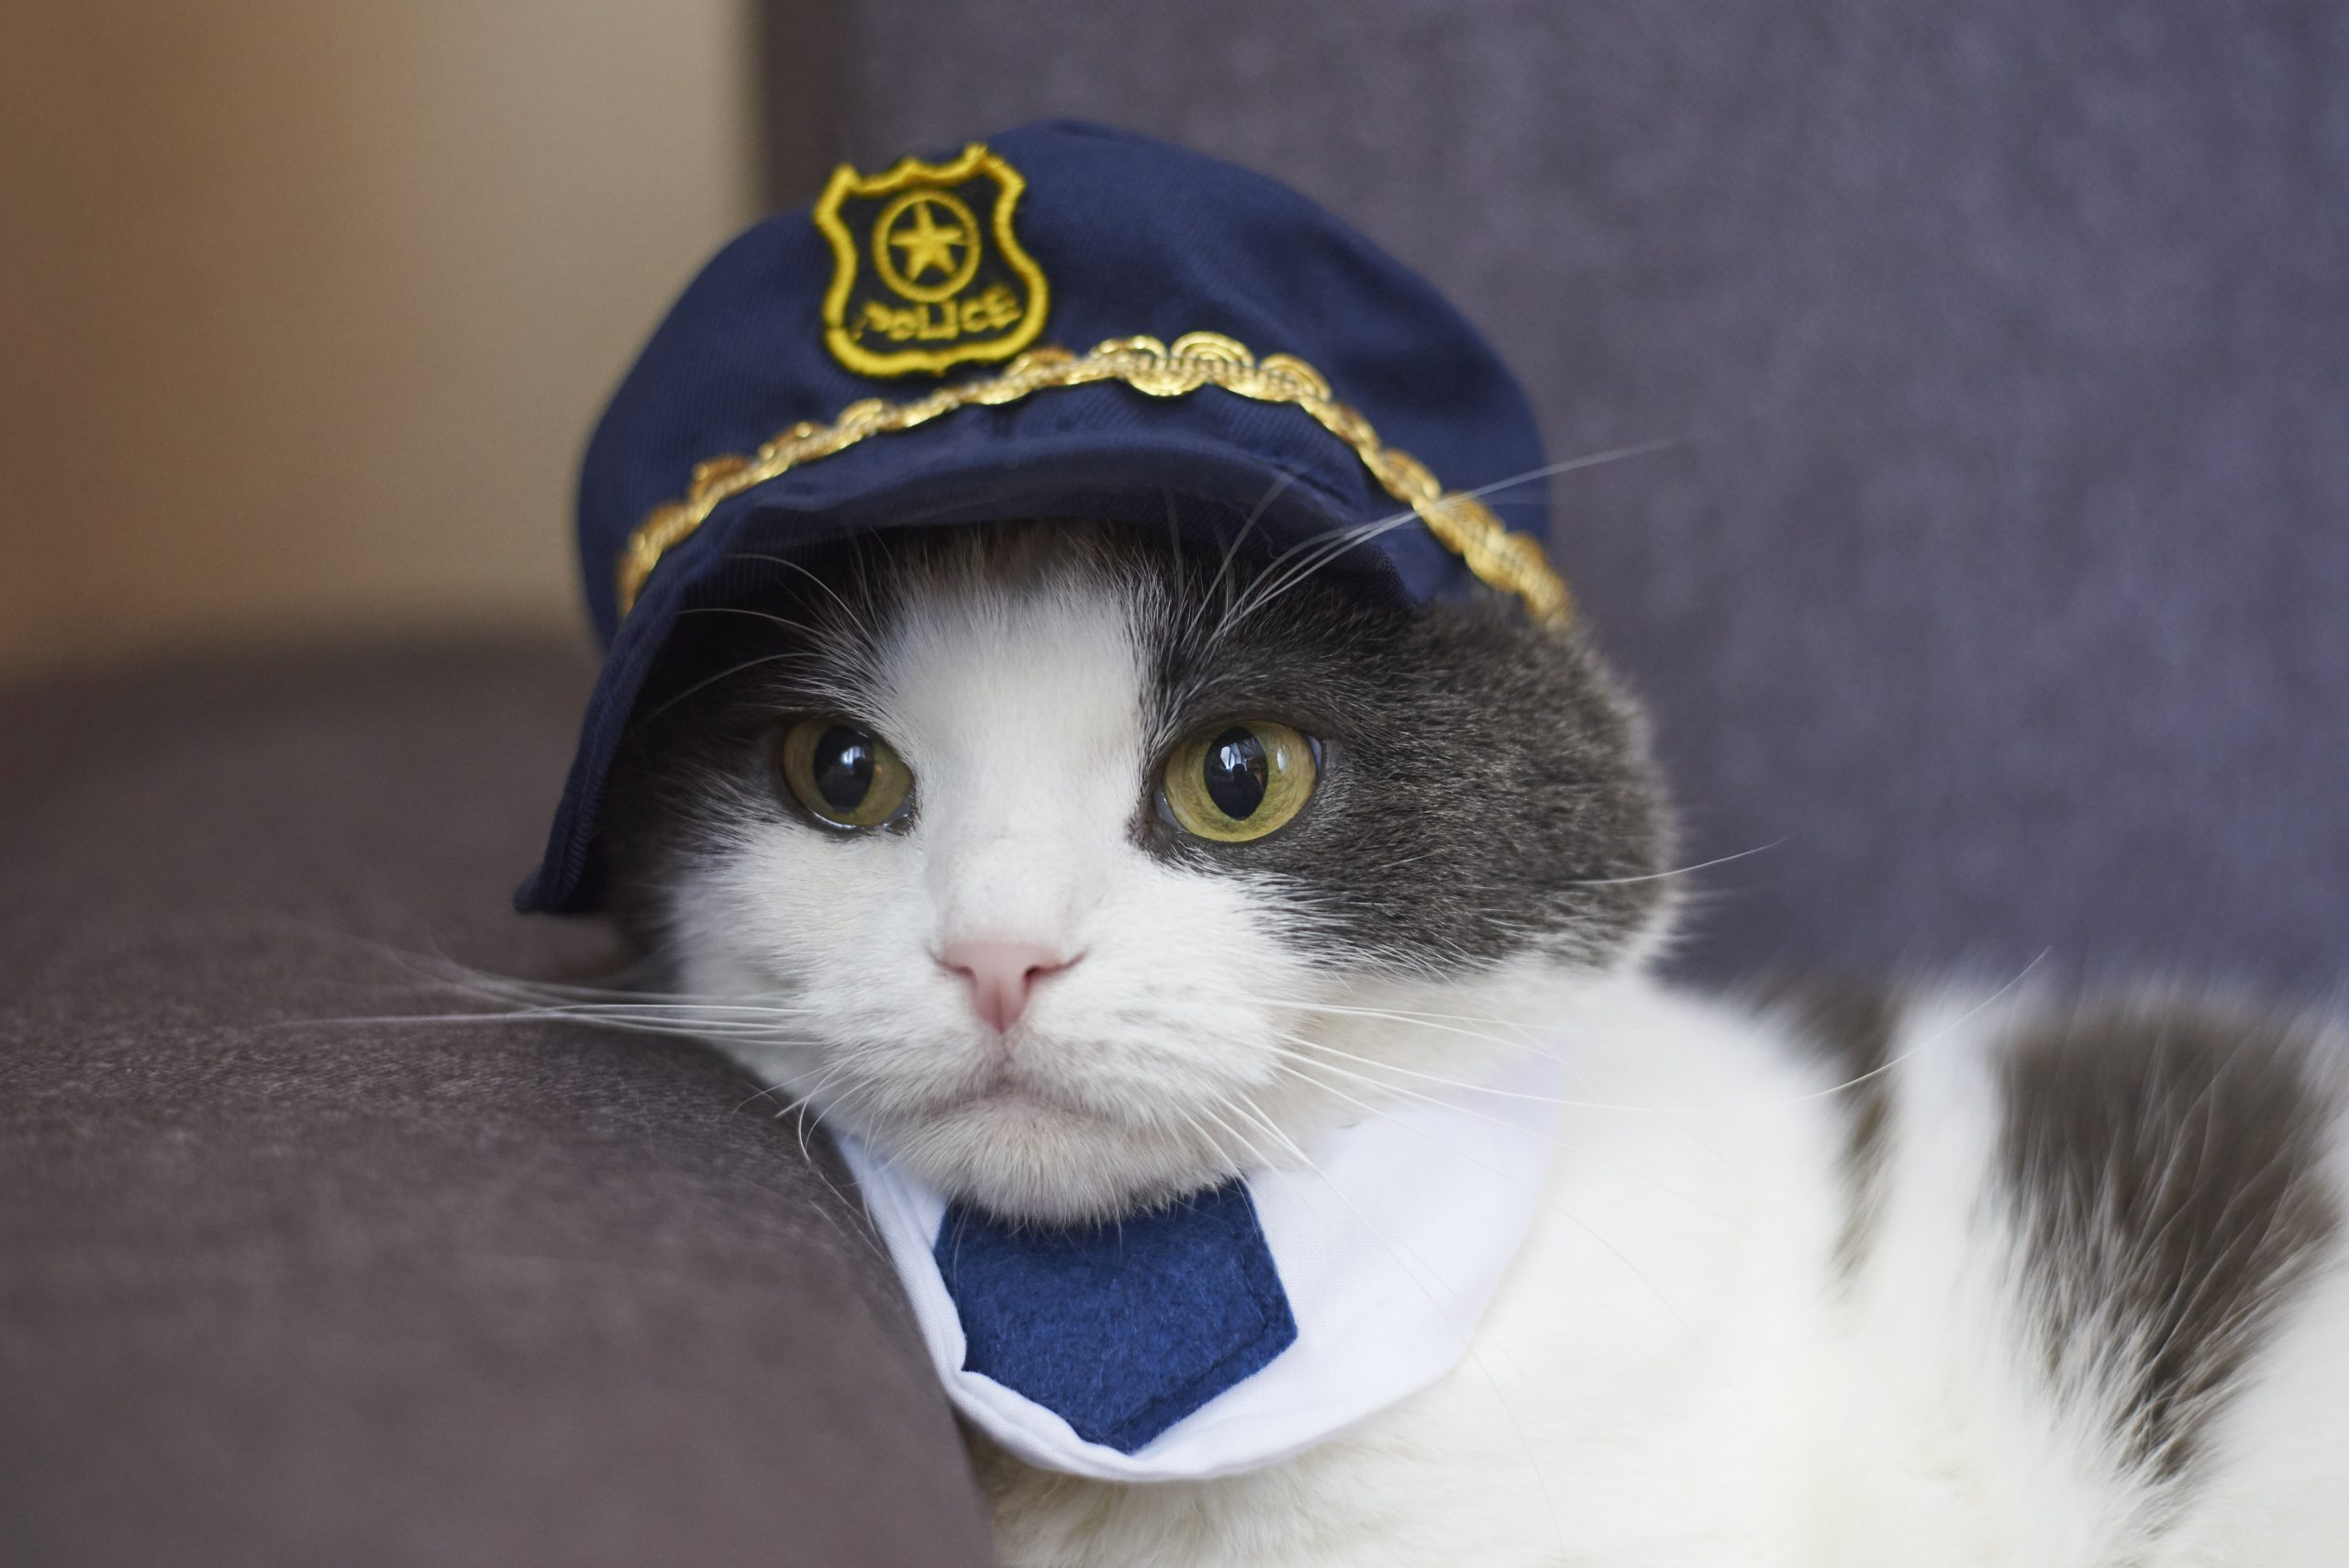 Portrait of a funny cat in a police hat and tie.